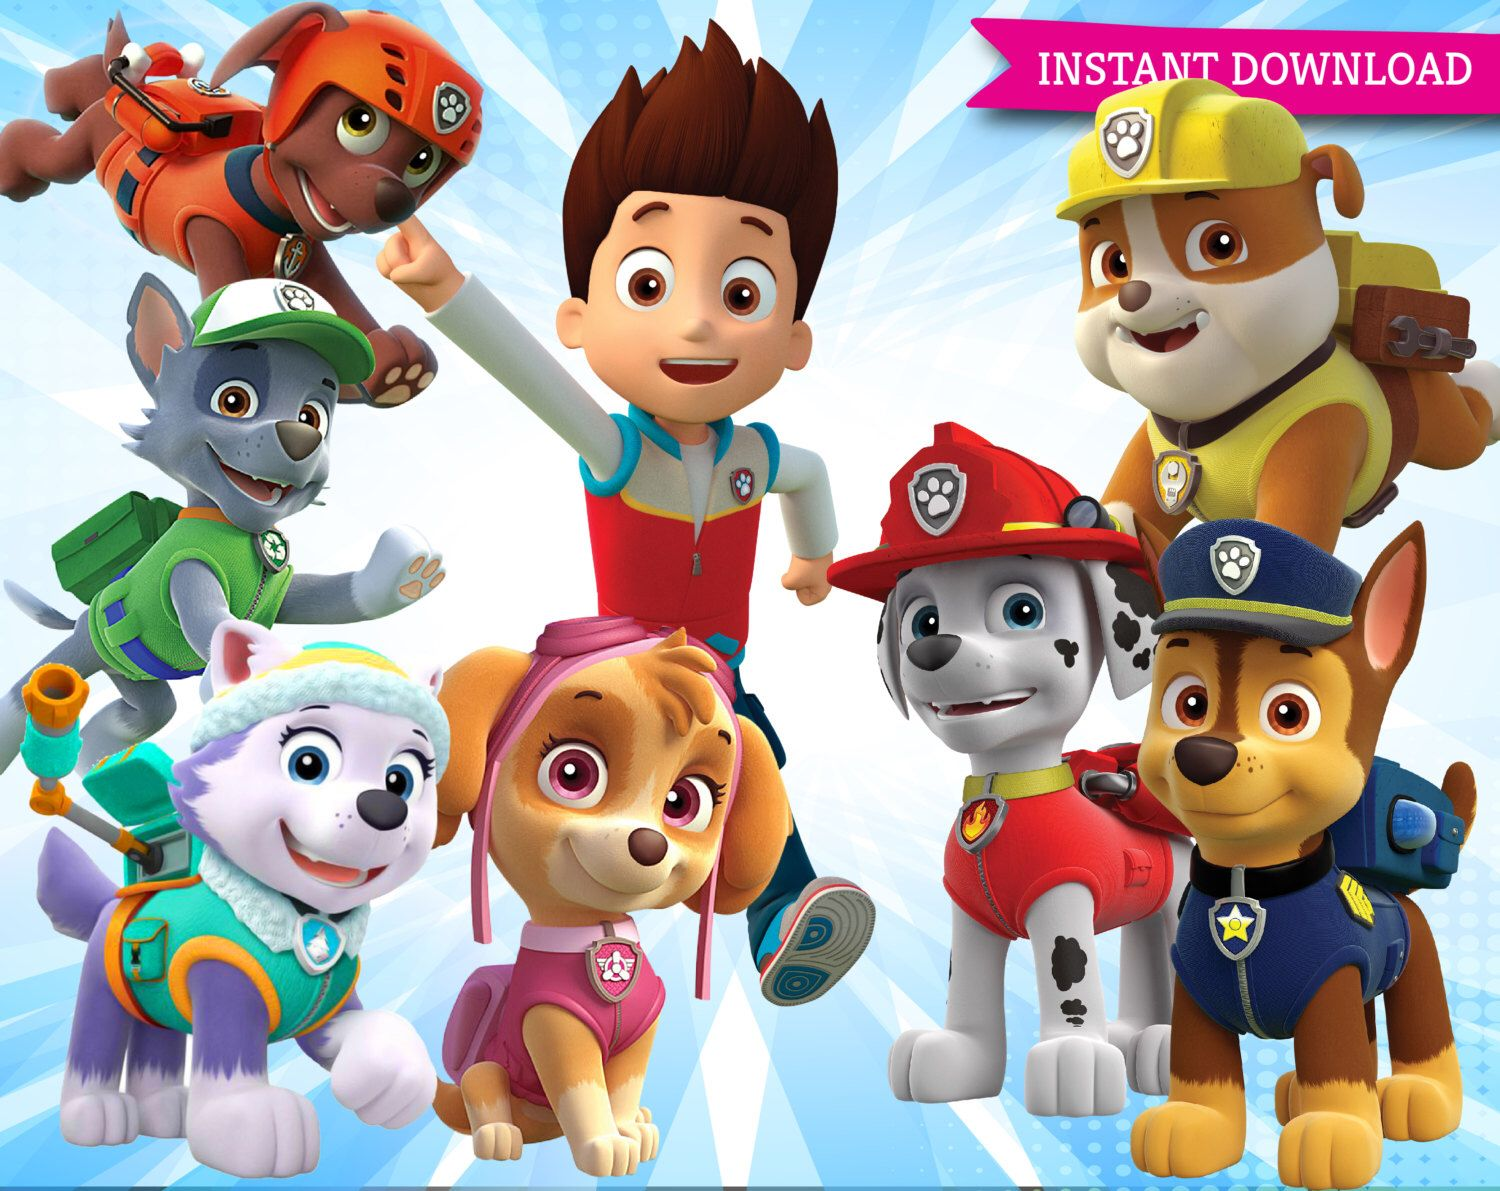 Paw Patrol Clipart Printable Pictures Transparent Background Images High Definition 300 Dpi Png Paw Patrol Decorations Paw Patrol Party Paw Patrol Clipart